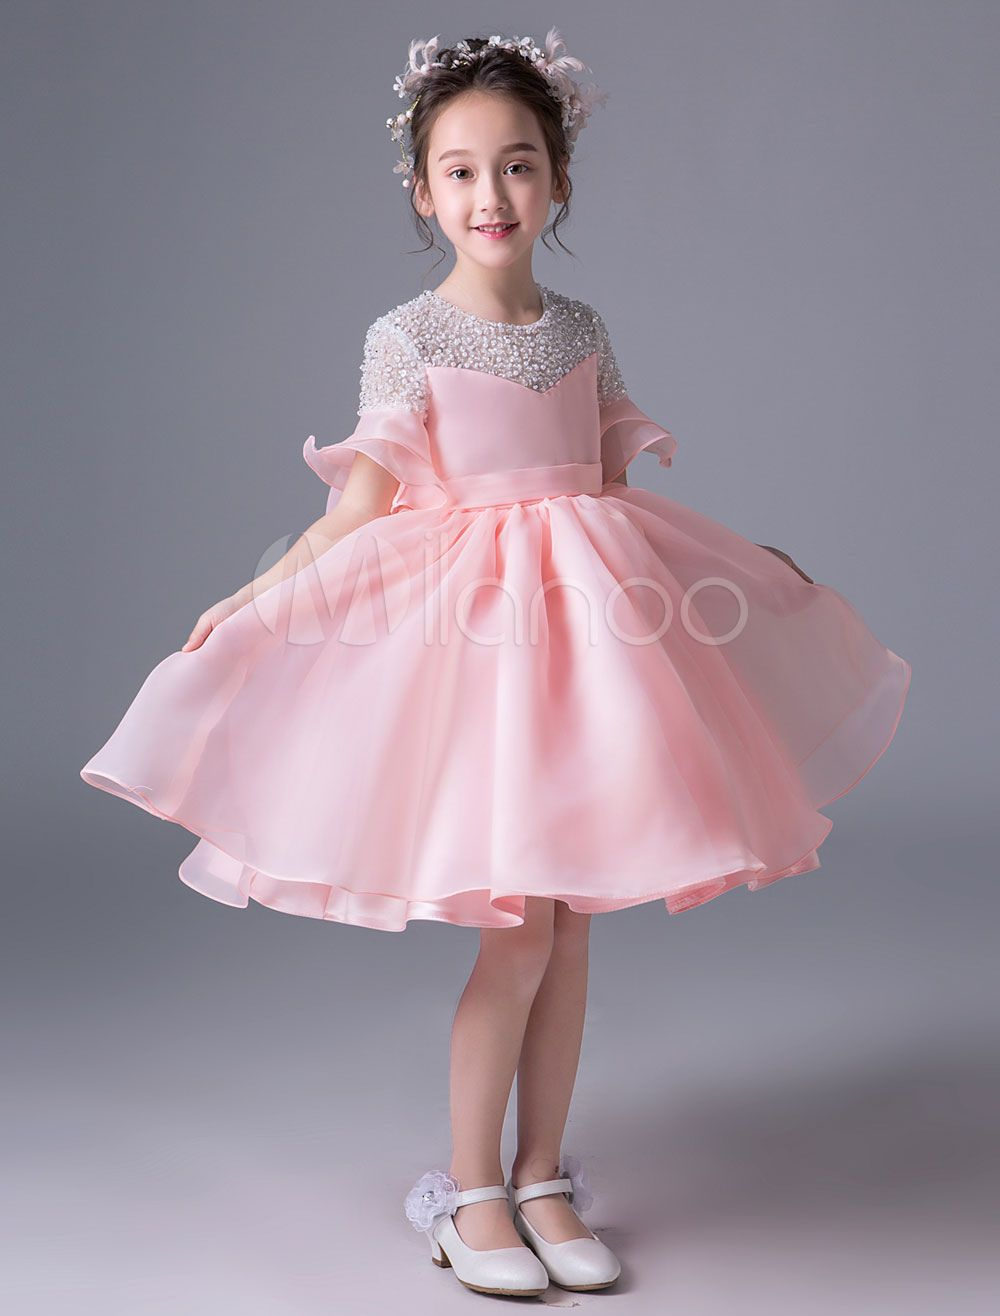 00e5afabb2b8 Flower Girl Dresses Pink Short Tutu Dress Bell Sleeve Bows Knee Length  Beaded Kids Princess Party Dresses